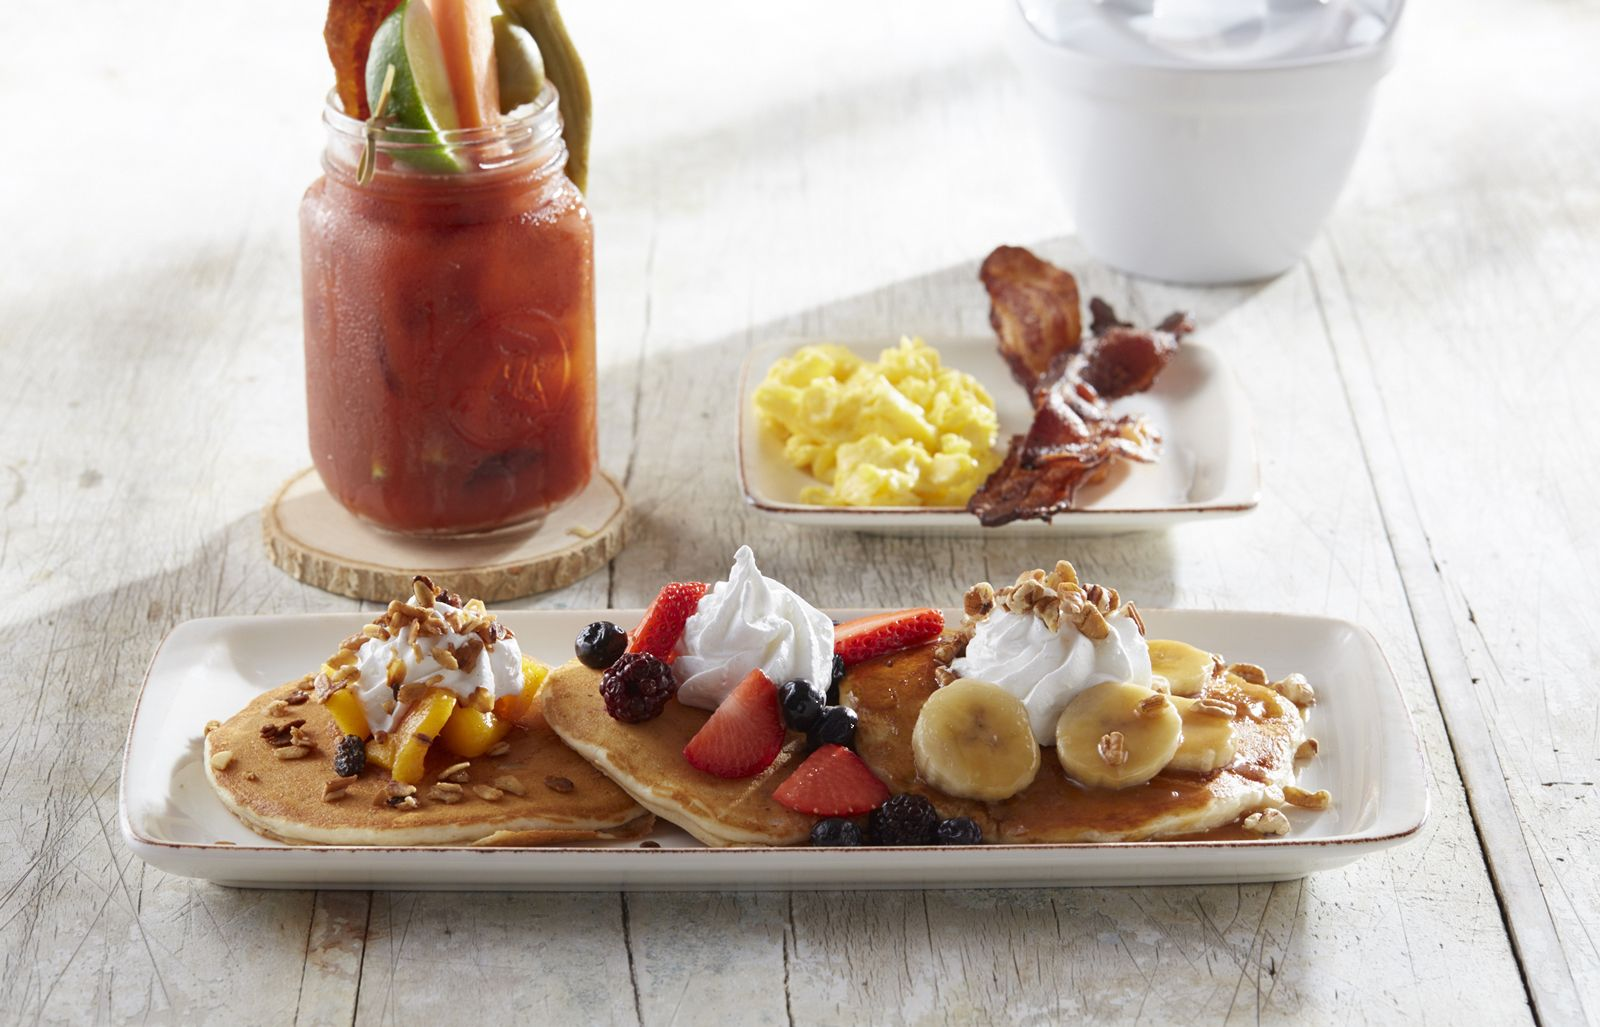 Another Broken Egg Cafe Opens First Kansas Location in Overland Park